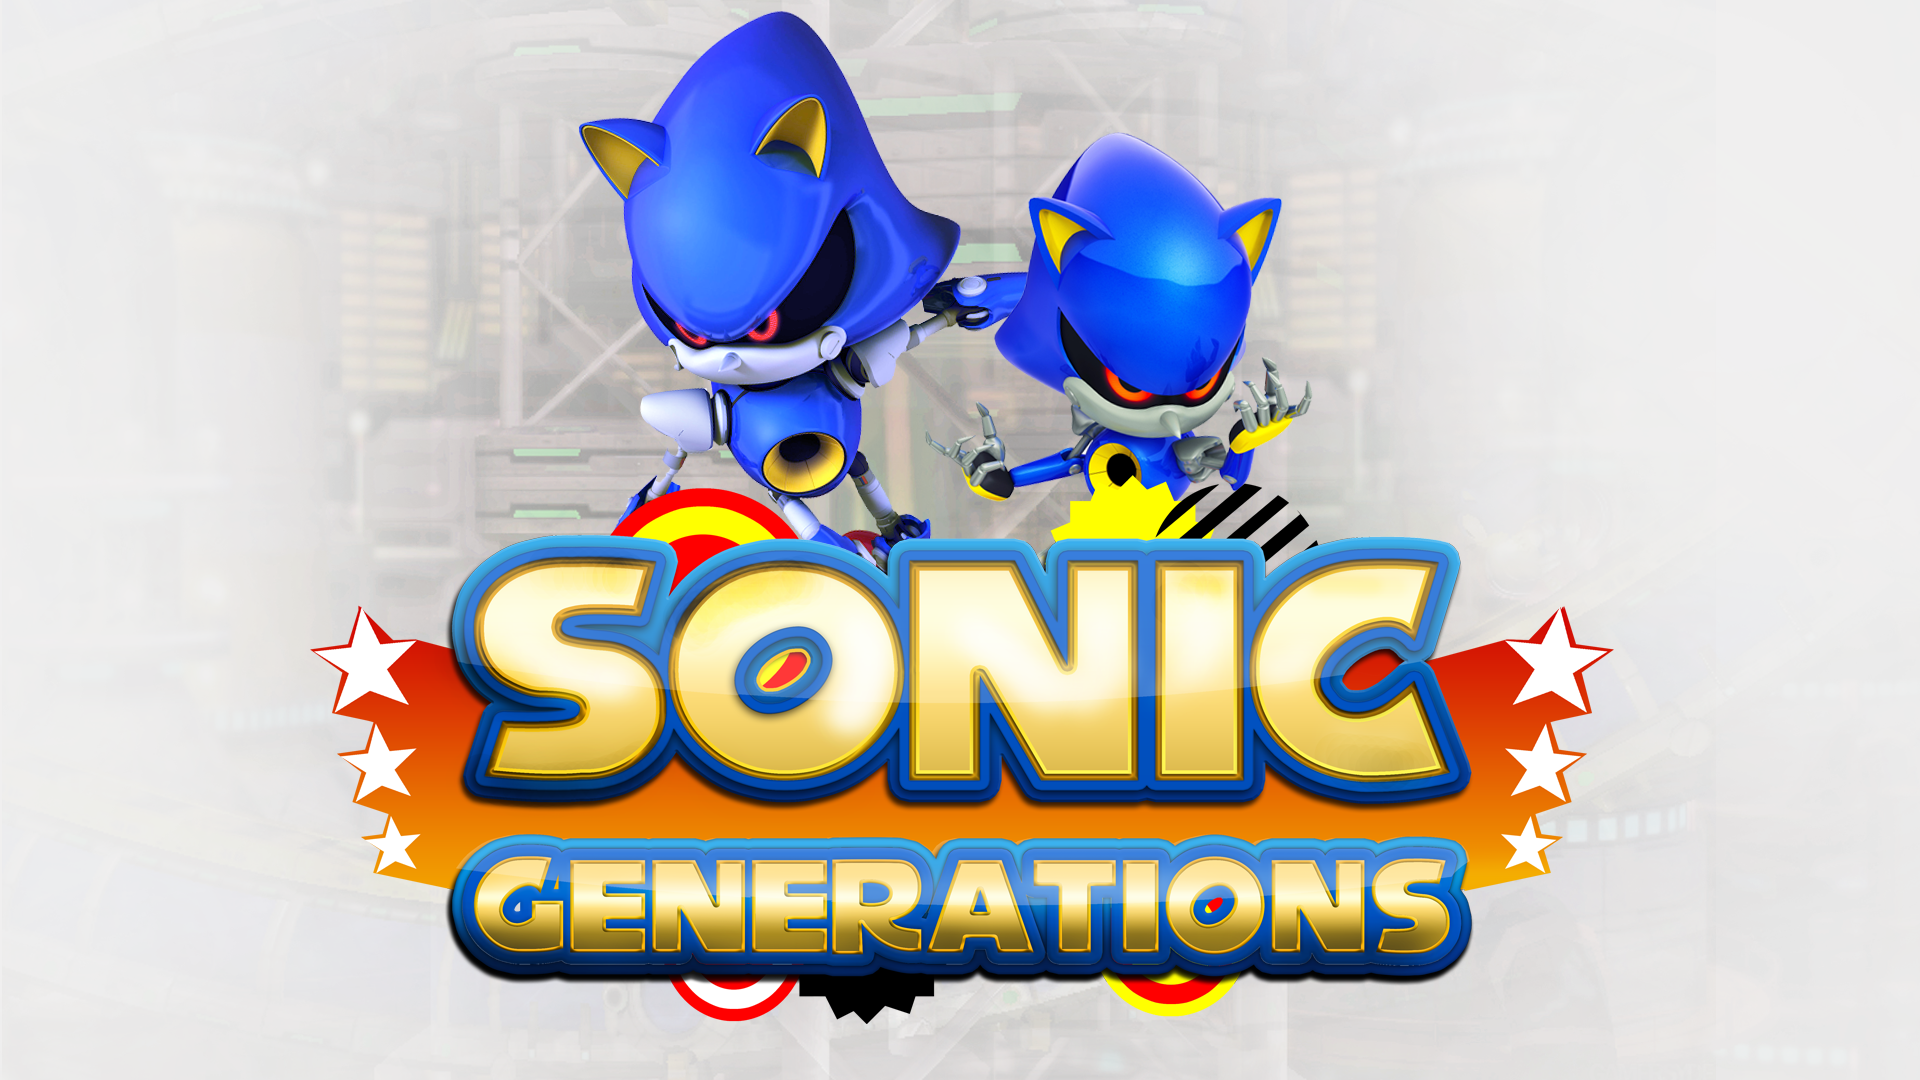 http://fc04.deviantart.net/fs71/f/2011/239/8/a/sonic_generations_wallpaper_4_by_darkfailure-d481883.png